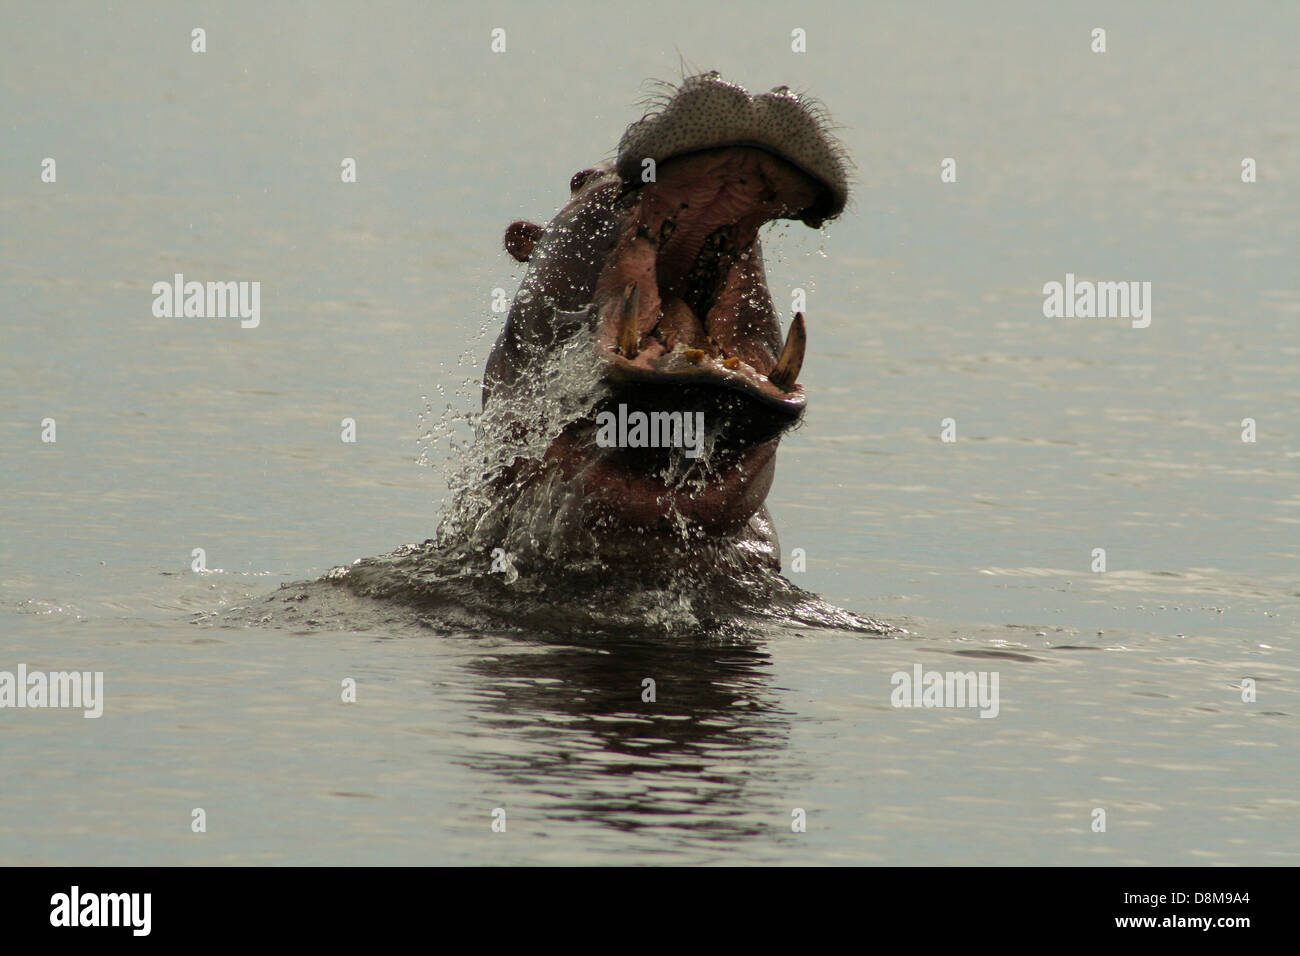 A Hippo in the Chobe River, Botswana - Stock Image